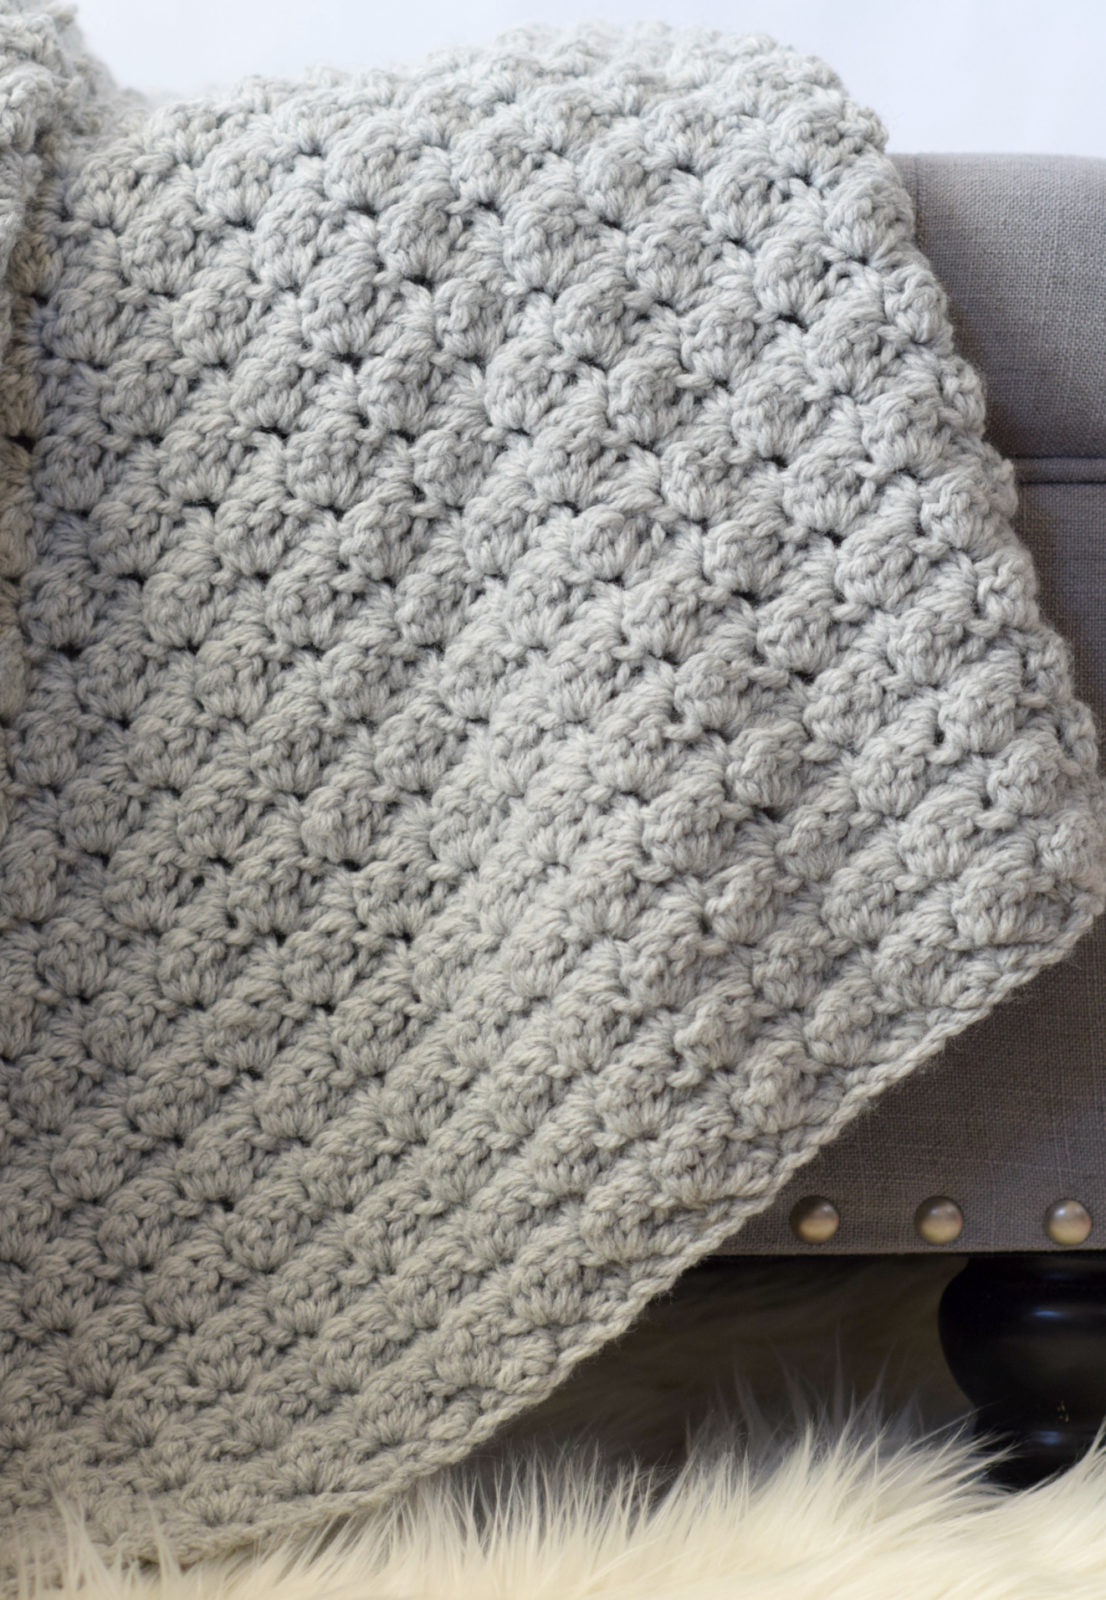 Afghan Blanket Crochet Pattern Inspirational Simple Crocheted Blanket Go to Pattern – Mama In A Stitch Of Incredible 43 Pictures Afghan Blanket Crochet Pattern